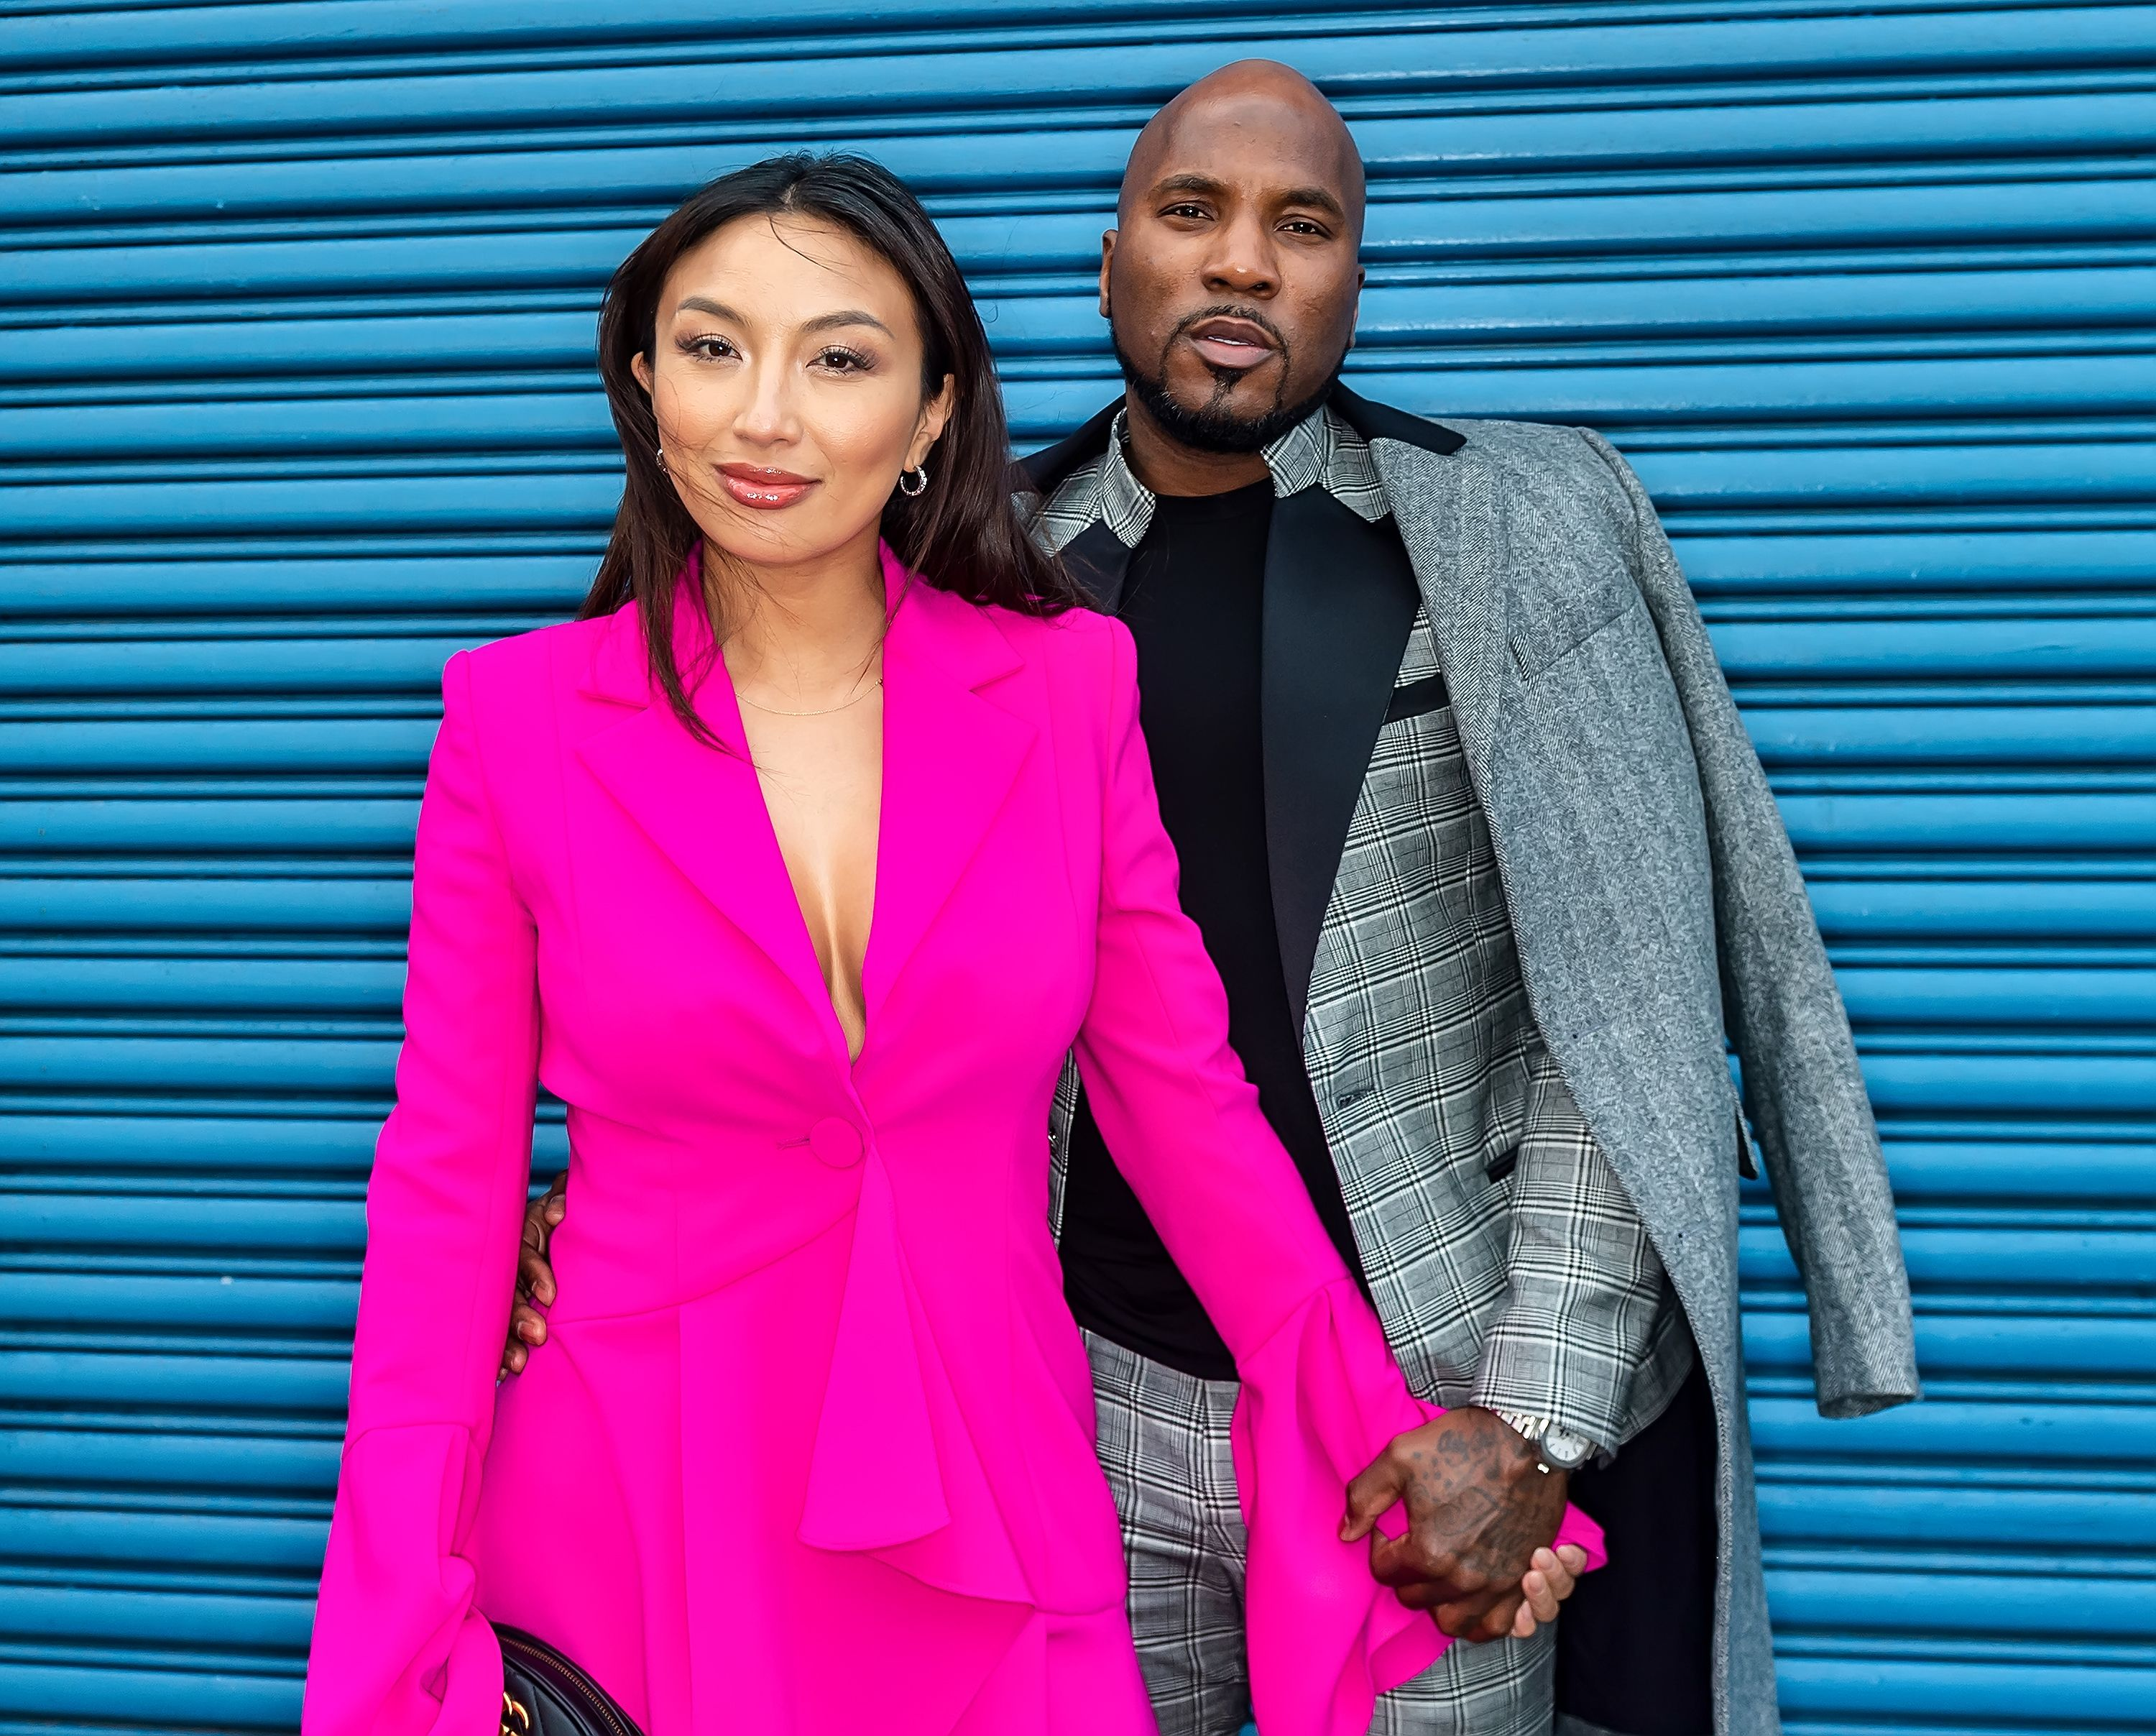 Jeannie Mai and Rapper Jeezy at New York Fashion Week at Pier 59 Studios on February 07, 2020 | Photo: Getty Images